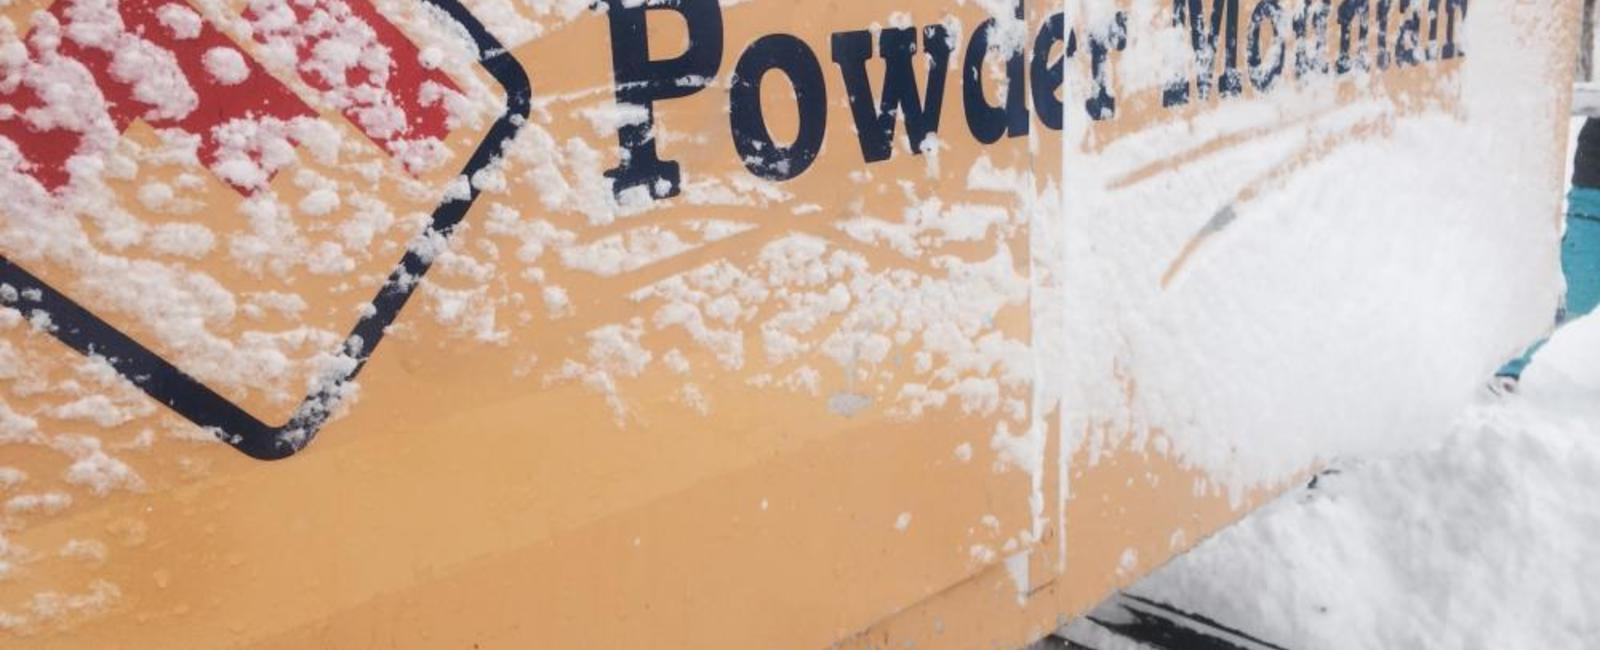 A promise delivered at Powder Mountain